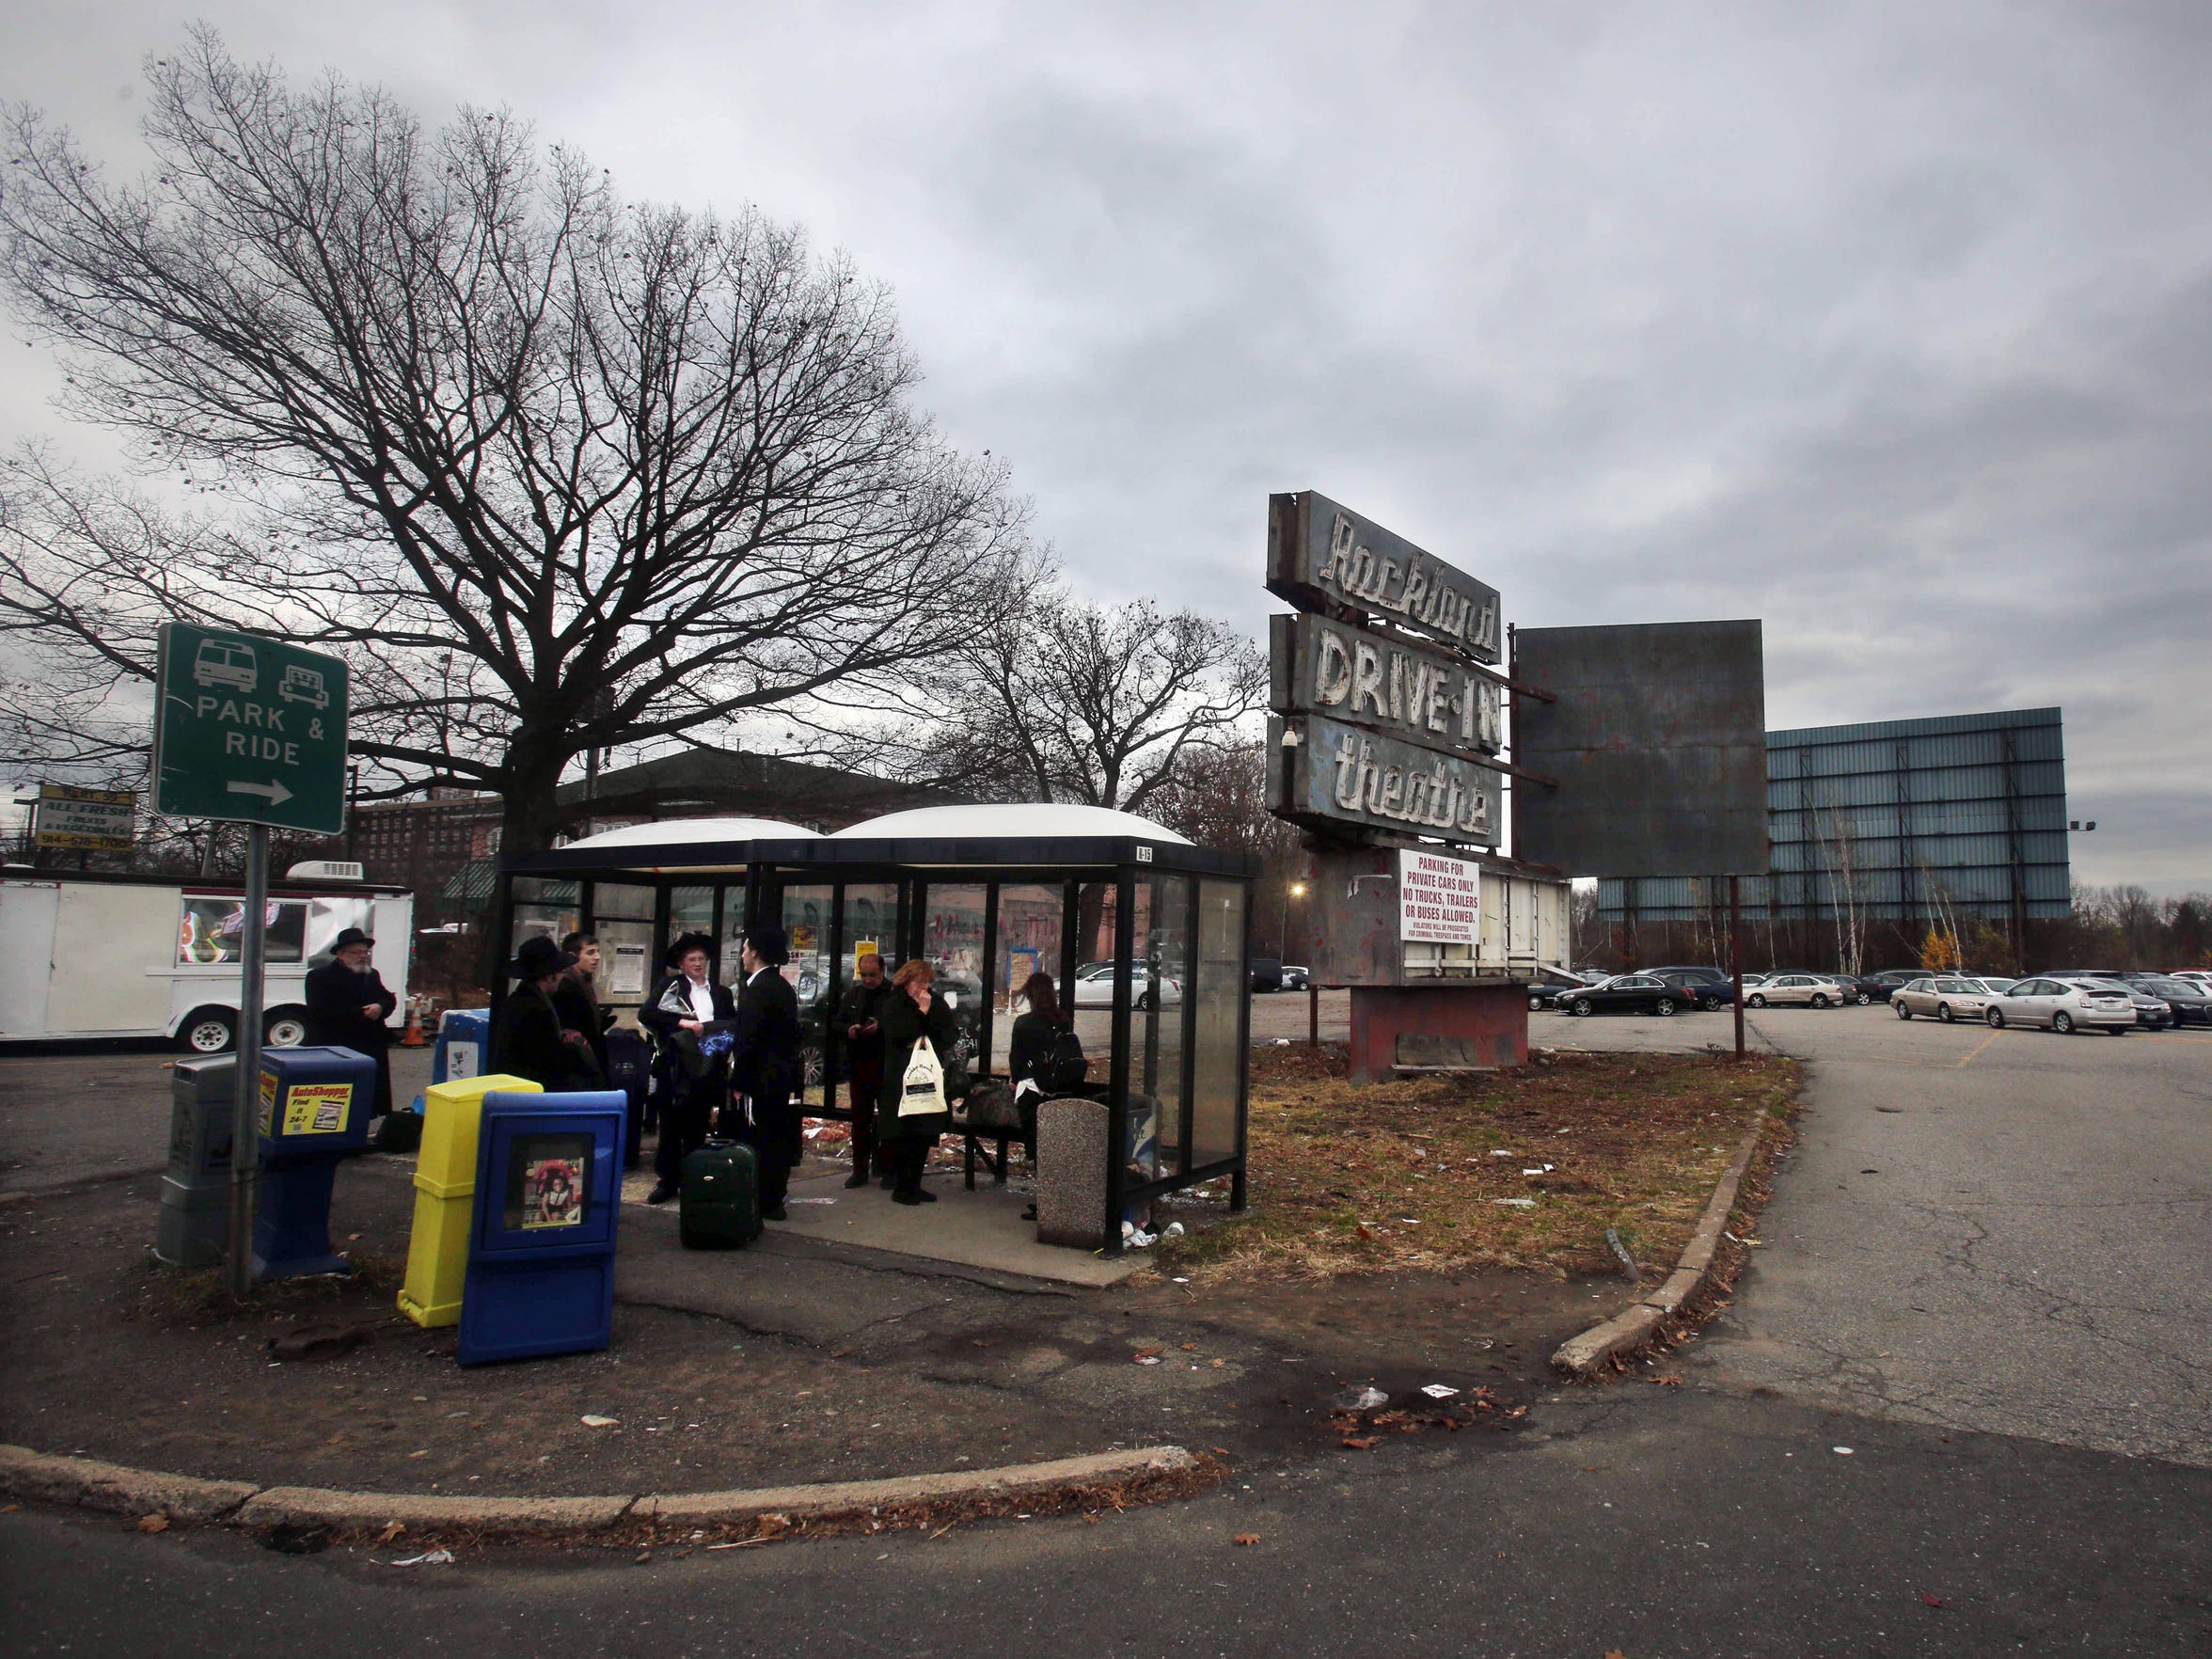 A bus stop in front of the old Rockland drive-in theater